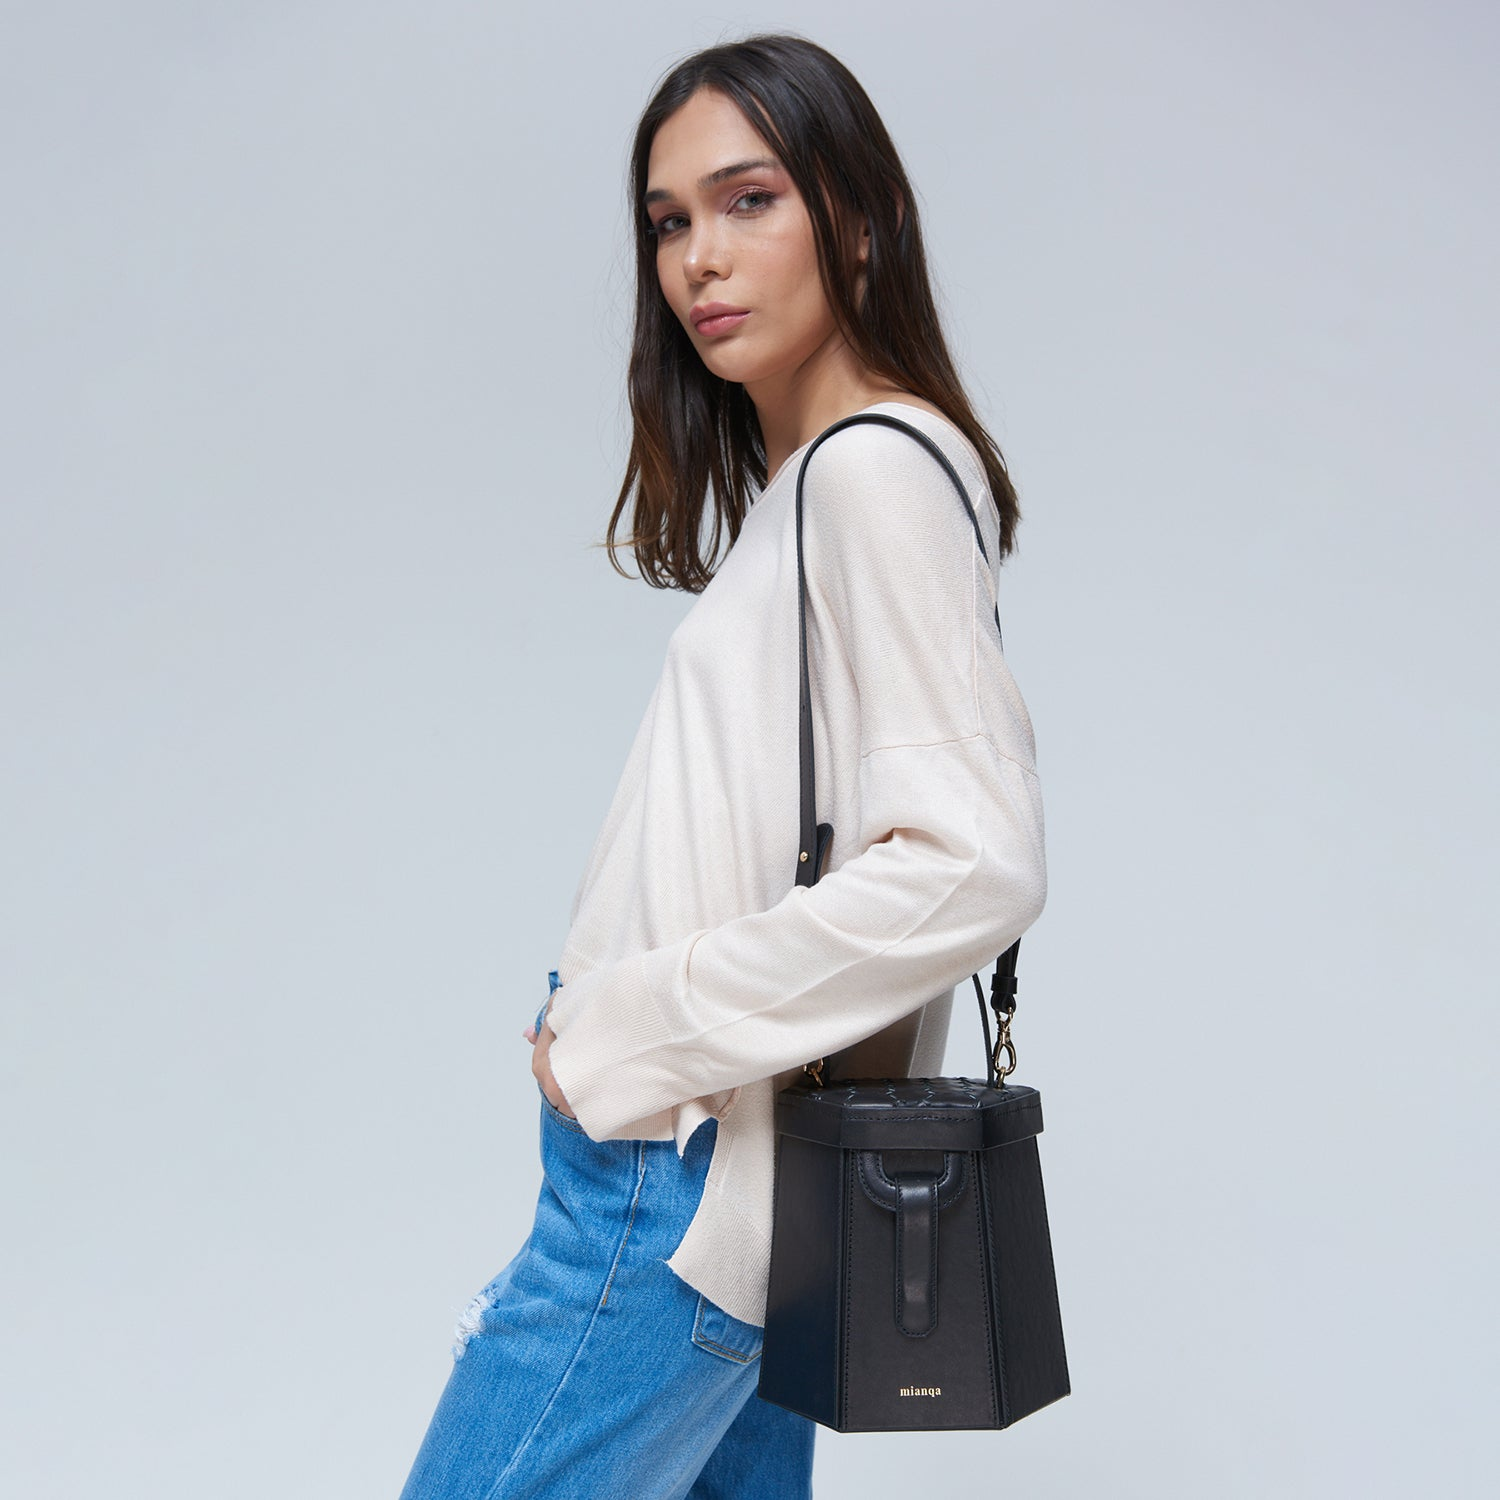 E L I F | Hexagon Bag Black